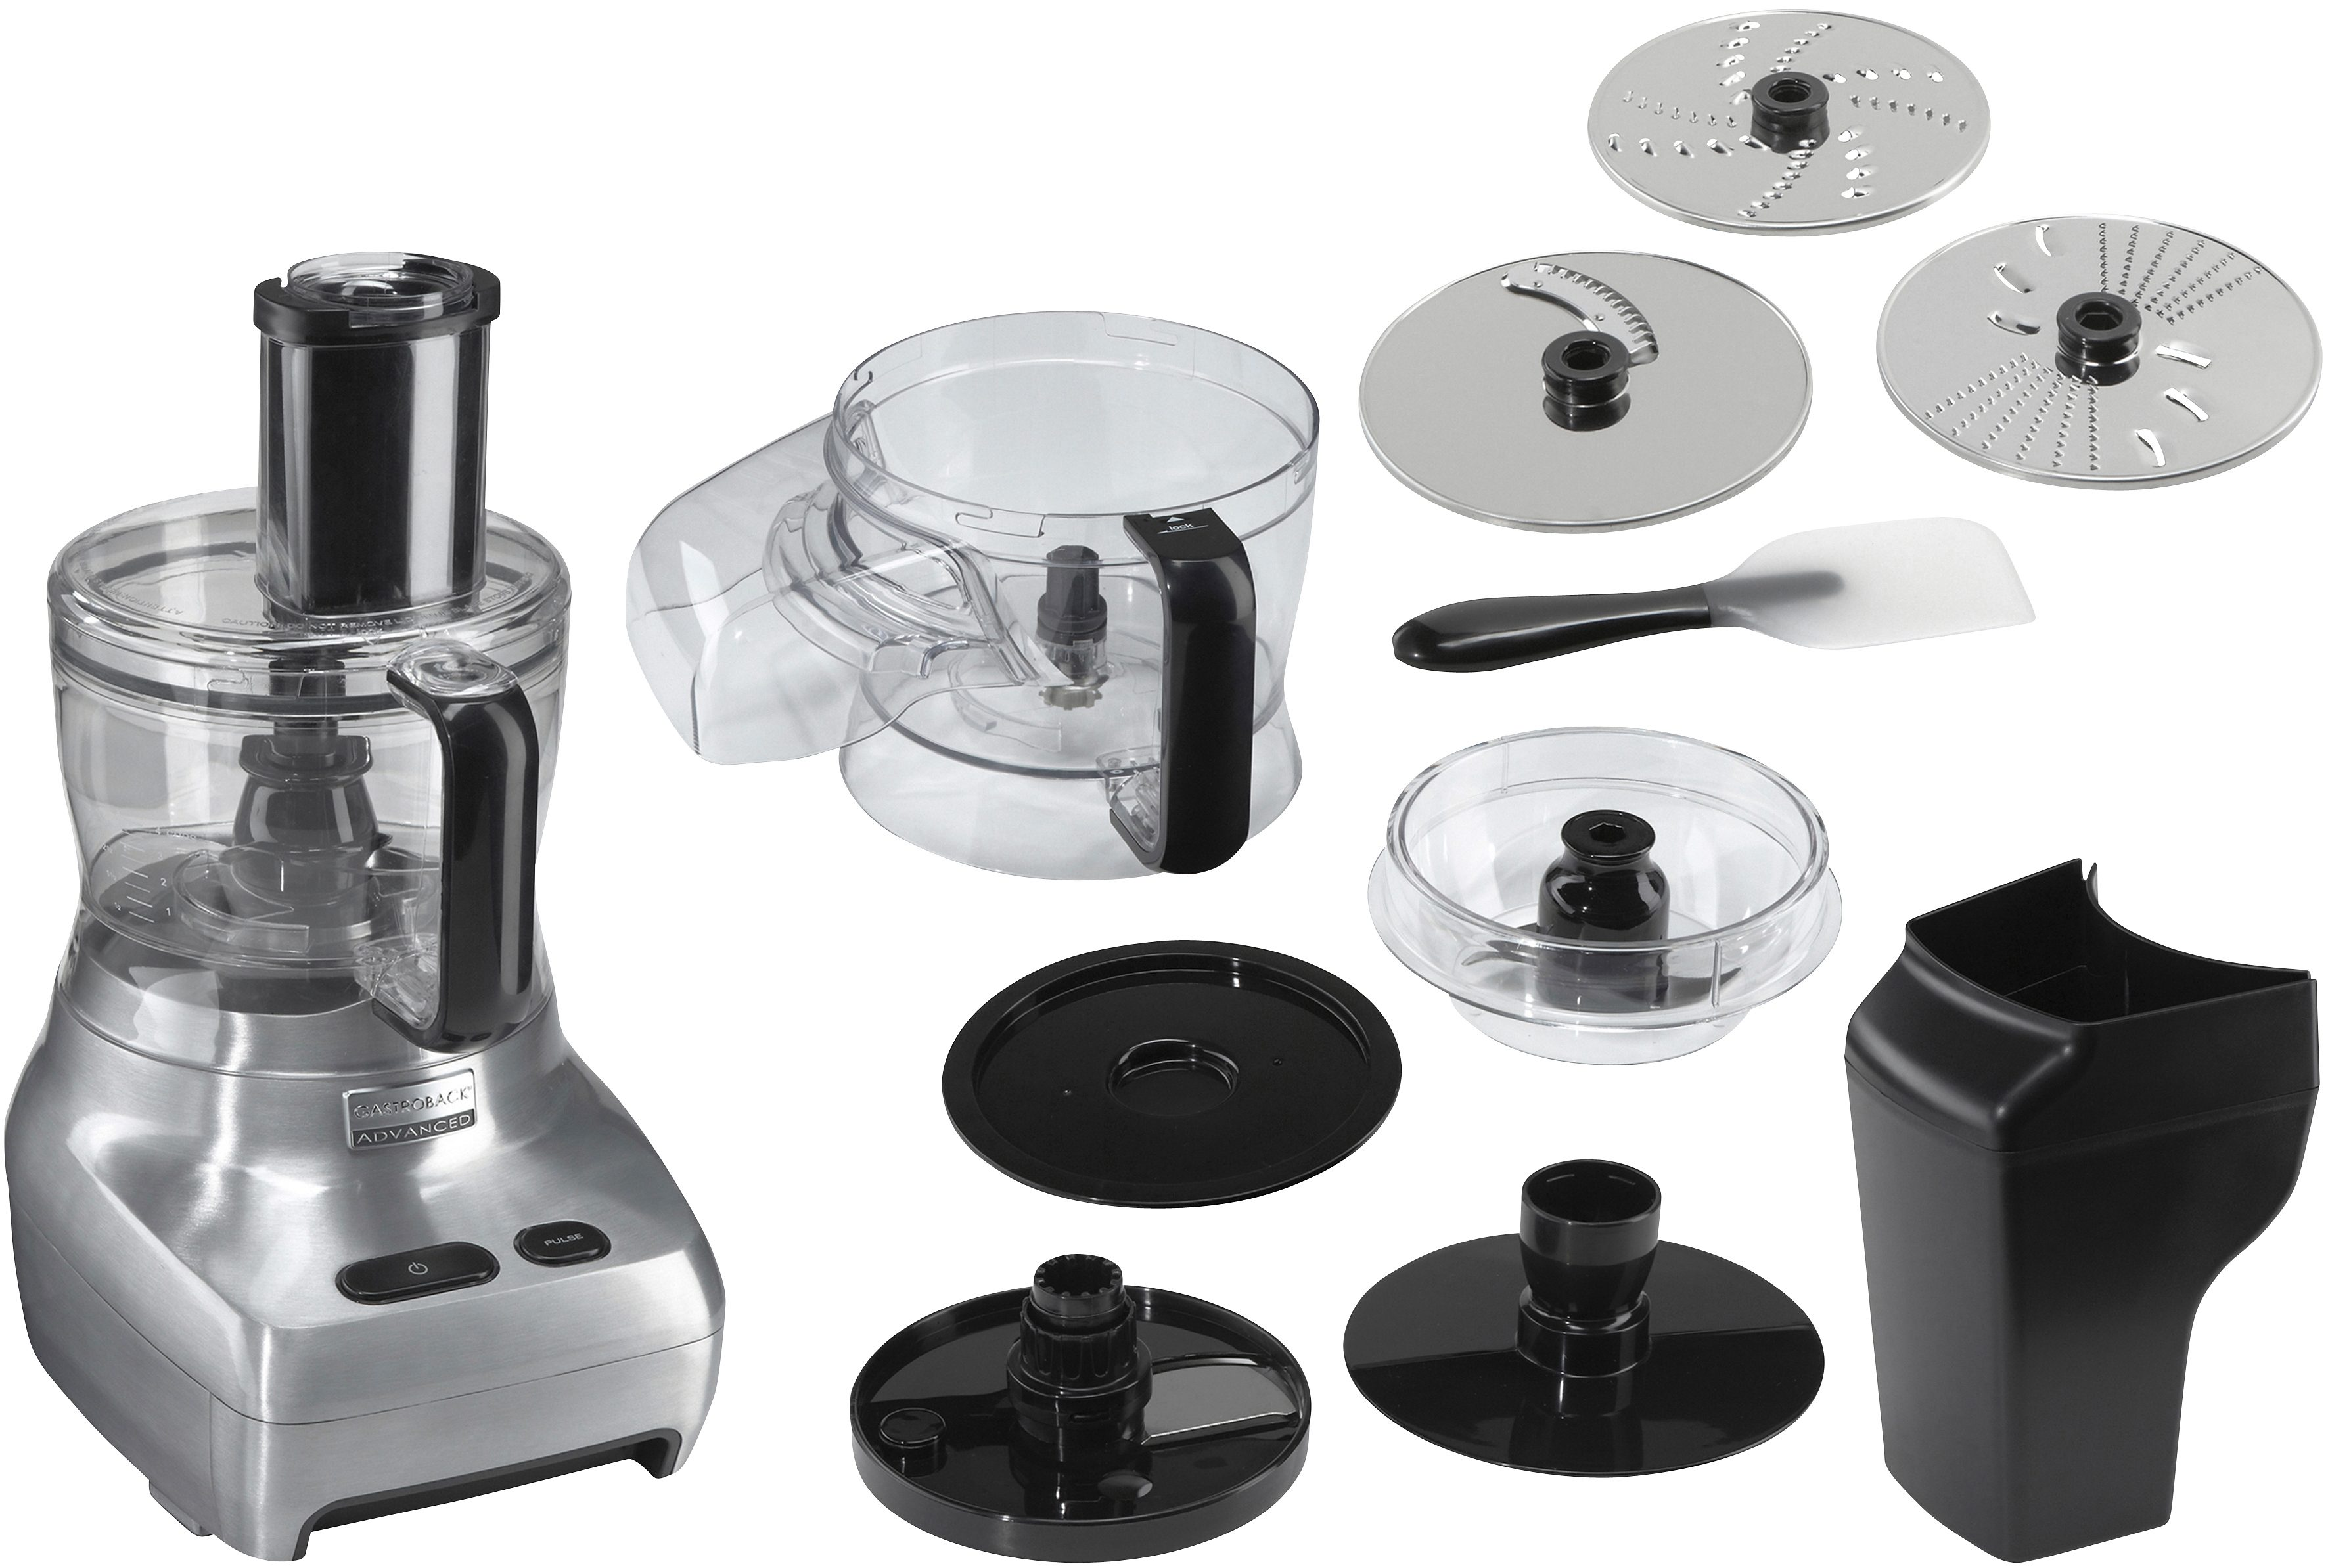 Gastroback Kompakt-Küchenmaschine Design Food Processor Advanced 40965, 1100 W, 2 l Schüssel